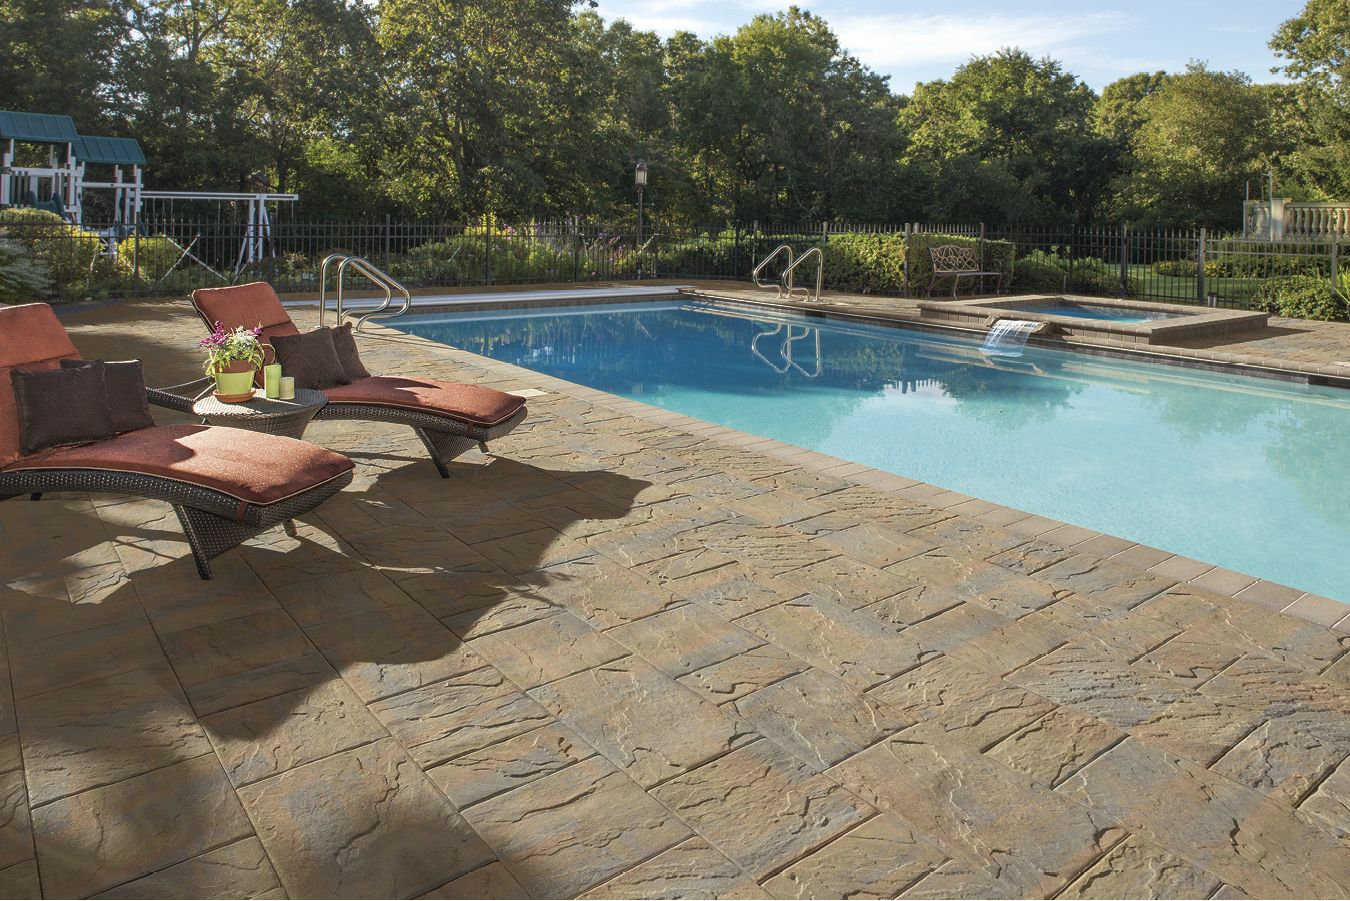 Cambridge pavingstones wall systems color options - Cambridge Pavingstones Pavingstone Systems The Sherwood Collection